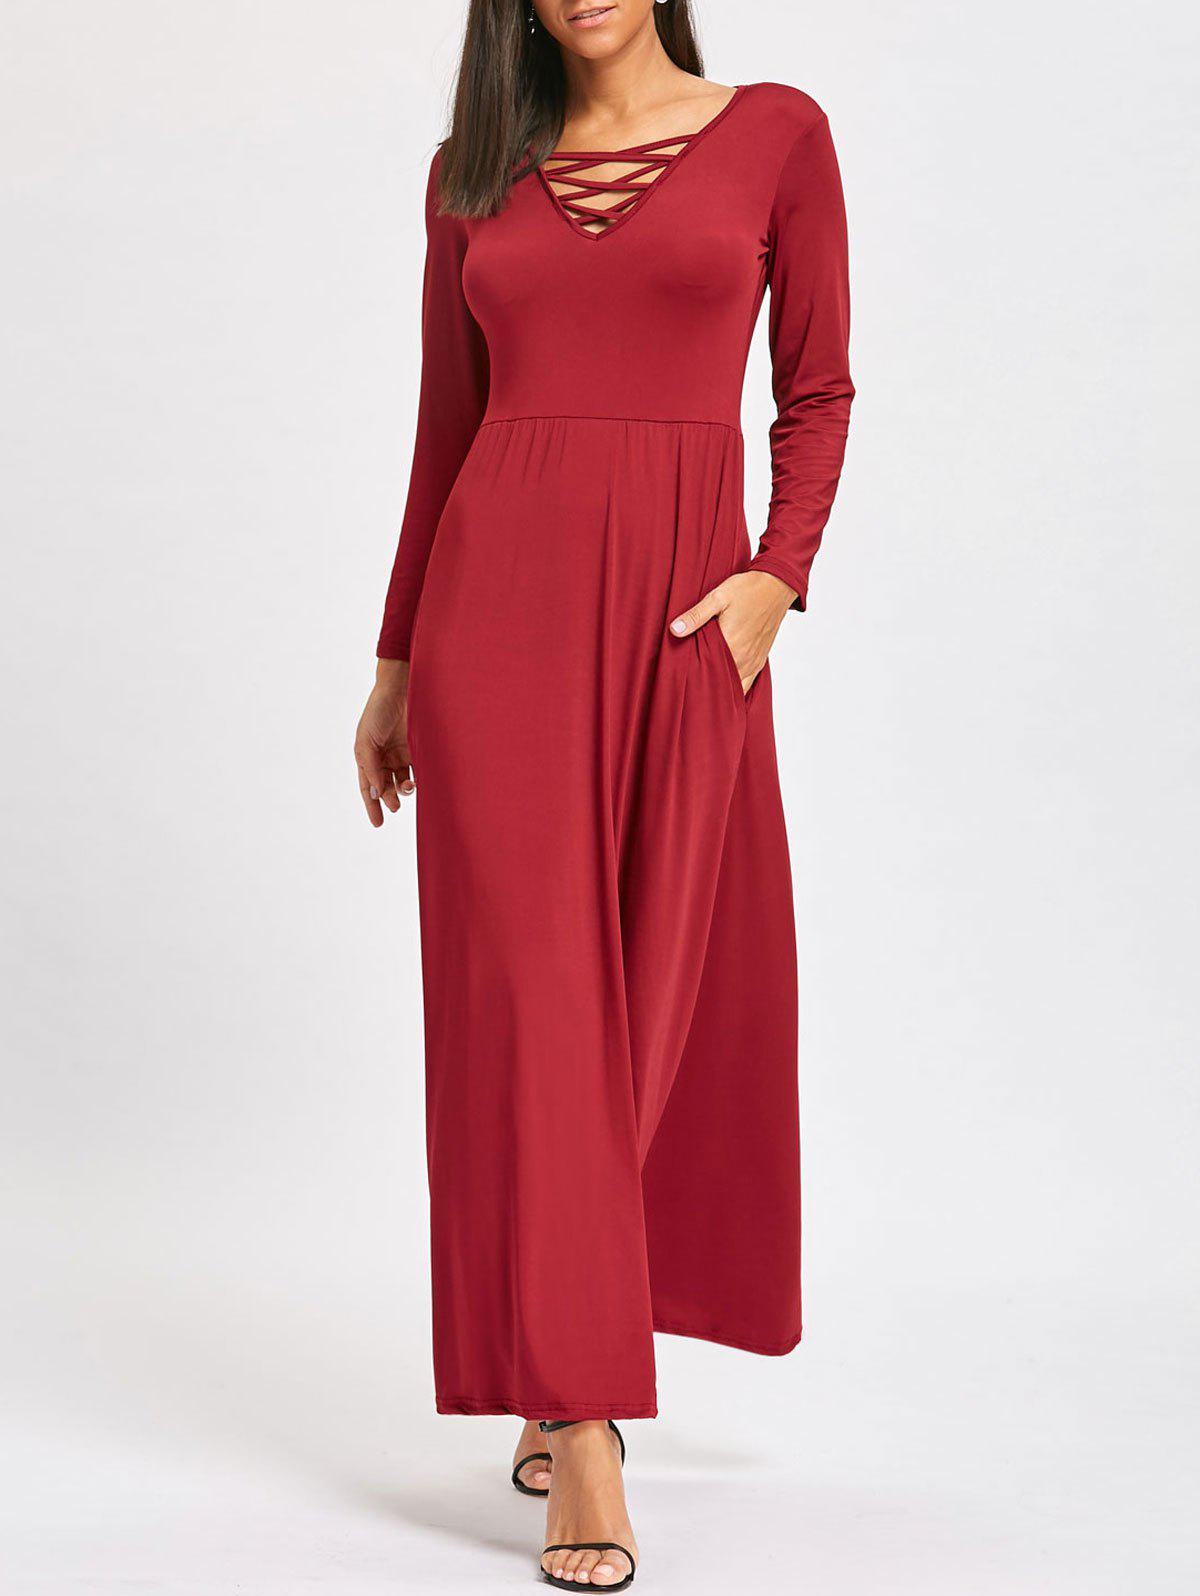 Long Sleeve Lattice V-neck Floor Length DressWOMEN<br><br>Size: M; Color: WINE RED; Style: Casual; Material: Polyester,Spandex; Silhouette: Straight; Dresses Length: Floor-Length; Neckline: V-Neck; Sleeve Length: Long Sleeves; Pattern Type: Solid; With Belt: No; Season: Fall,Spring; Weight: 0.3700kg; Package Contents: 1 x Dress;